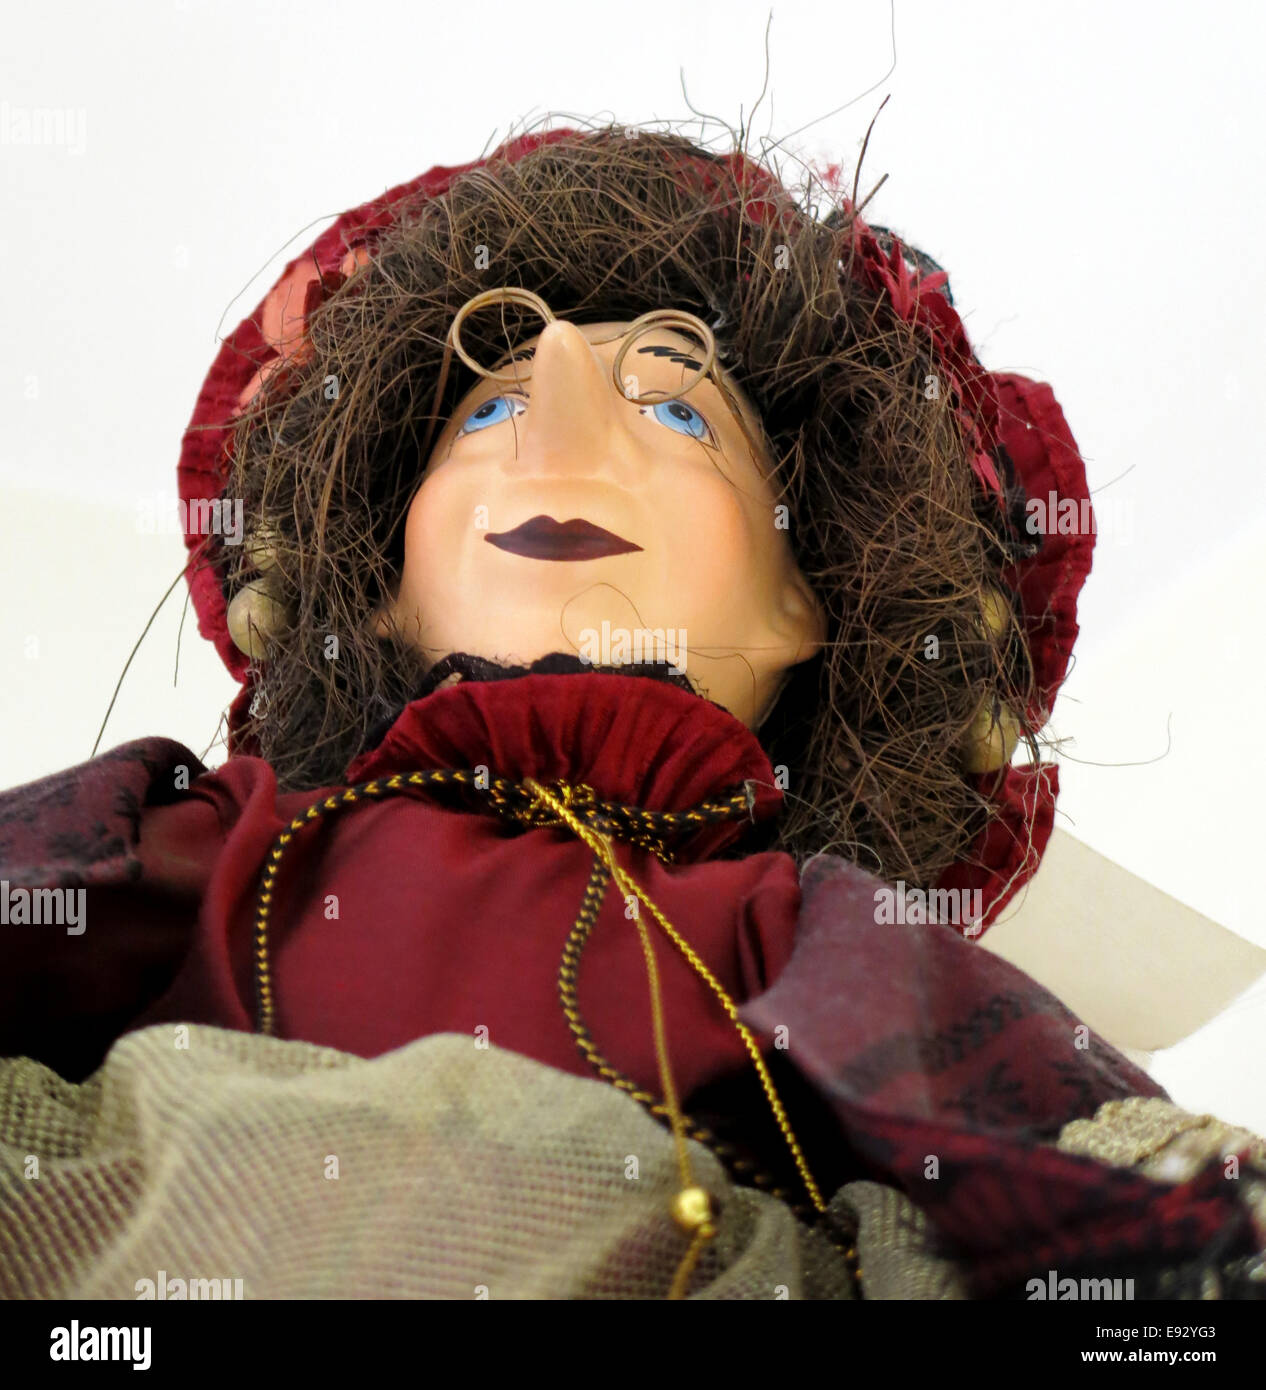 Marionette of a good natured witch, low angle view. - Stock Image